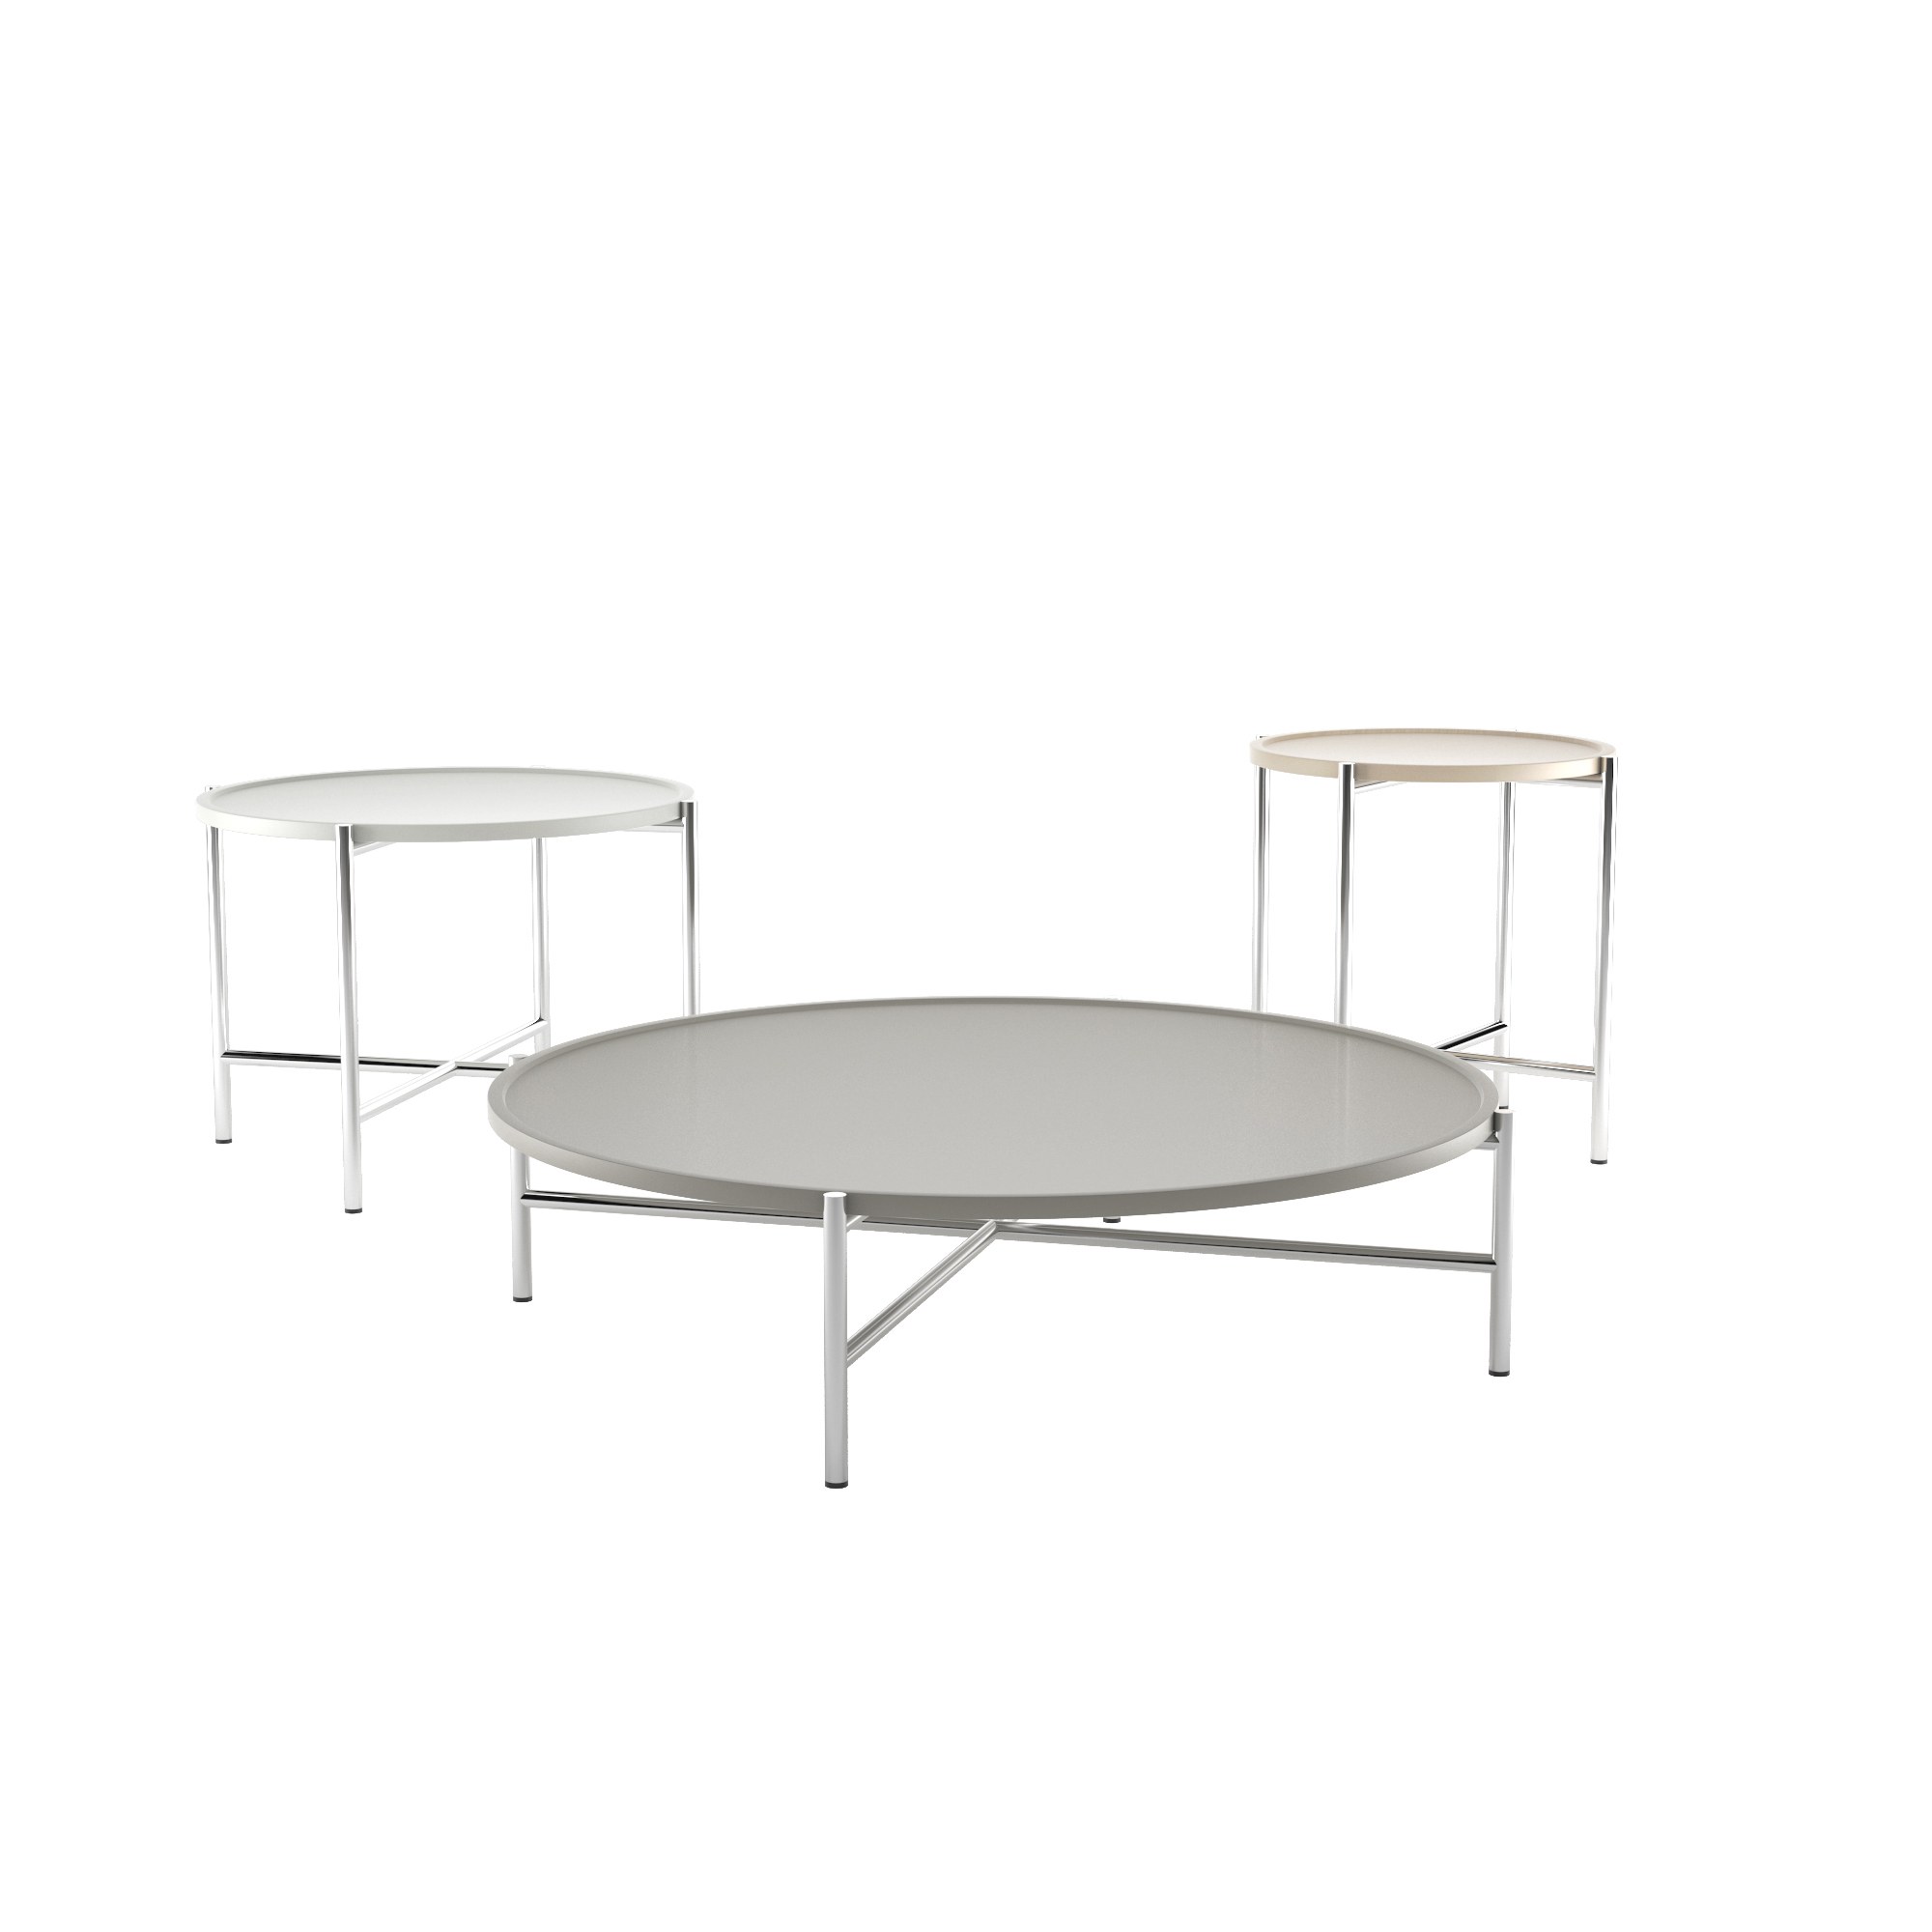 04S_Estel_Comfort&Relax_Coffee-tables_Dolly-coffee-table